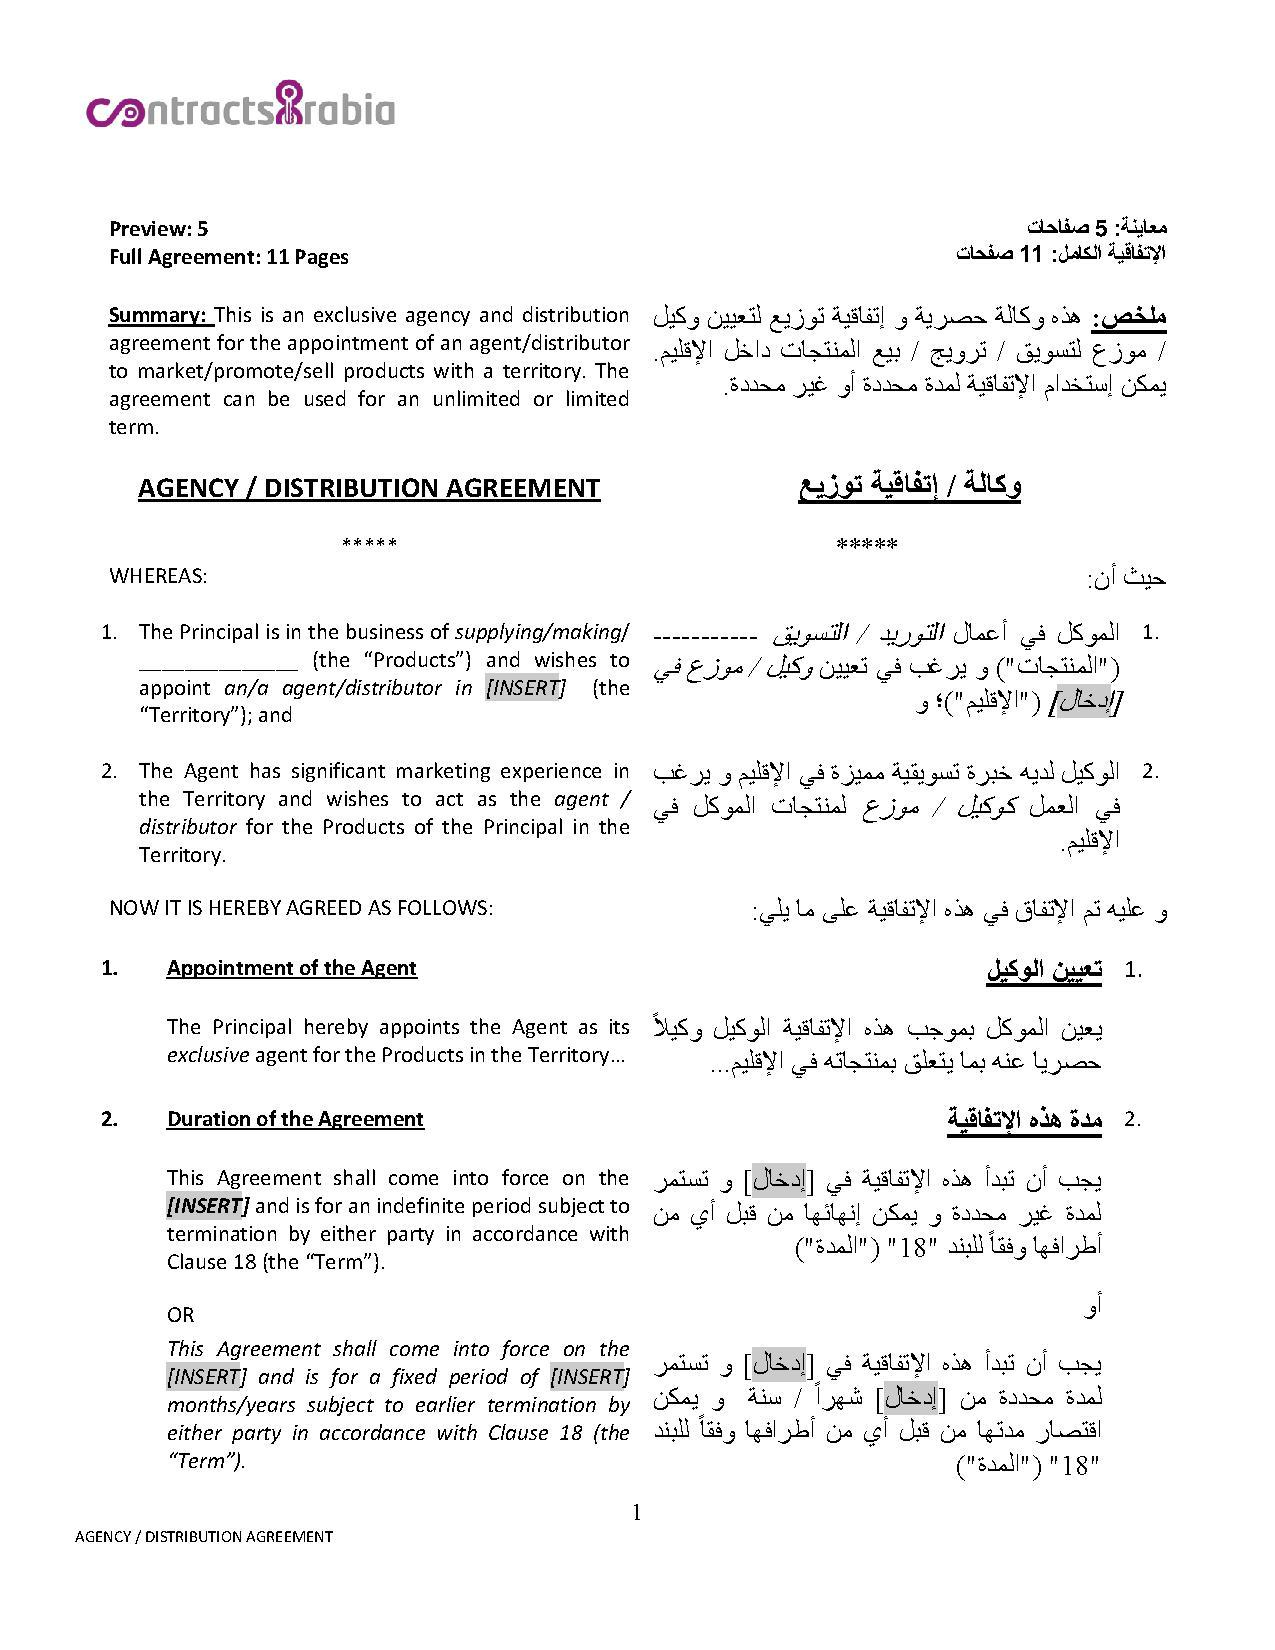 Distributor Agreement Sample Contract Fileexclusive Agency And Distribution Agreementpdf Wikimedia Commons